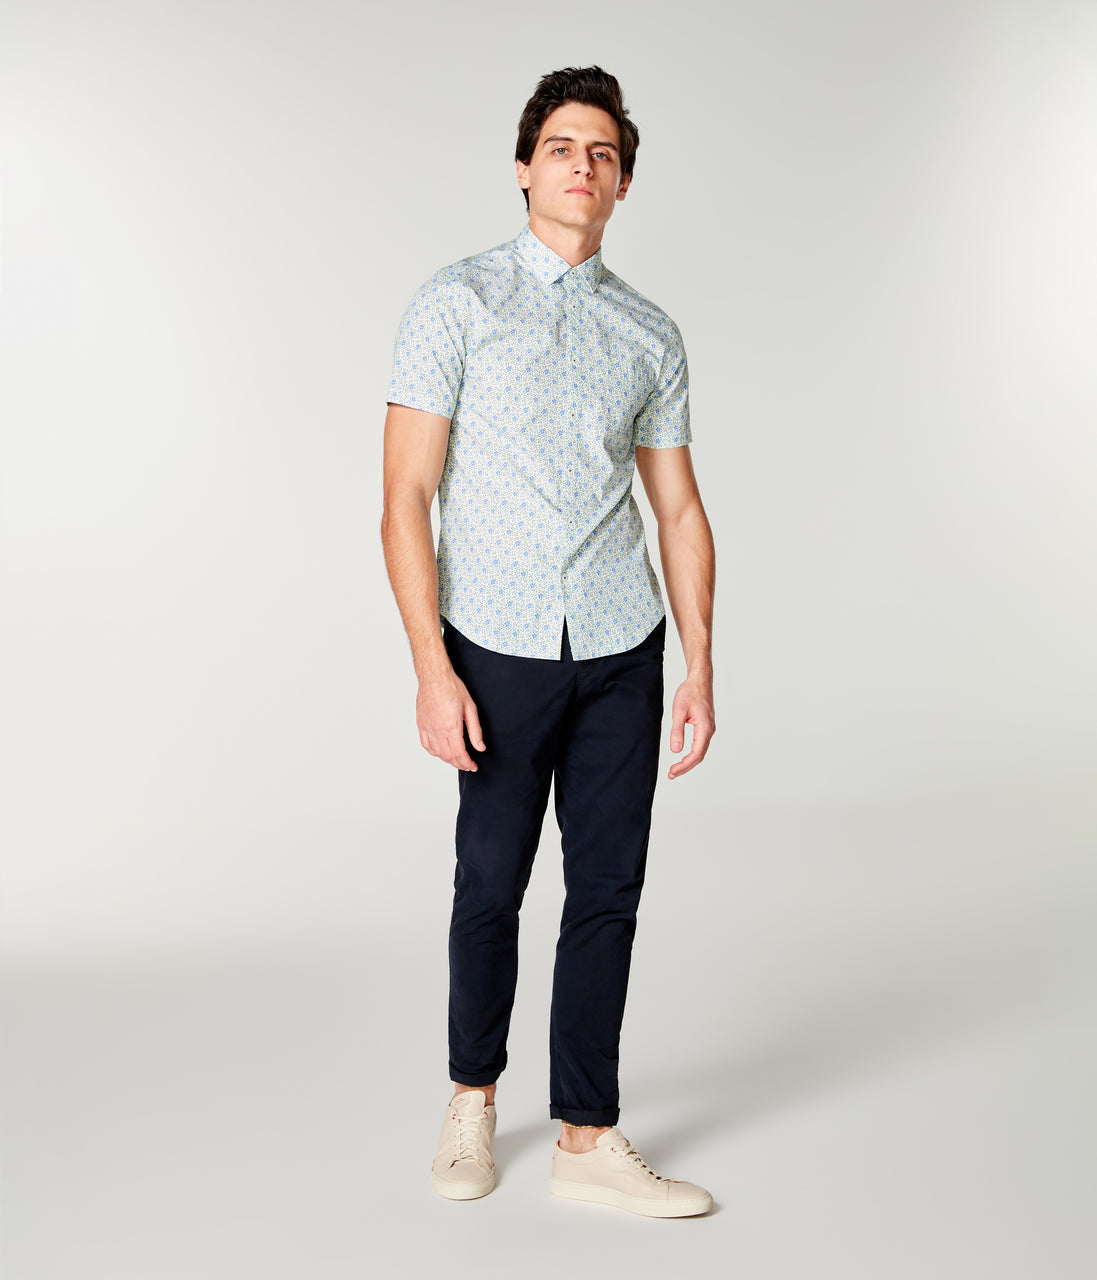 Woven On-Point Shirt - Blue Daisy - Good Man Brand - On-Point Print Shirt Short Sleeve - Blue Daisy